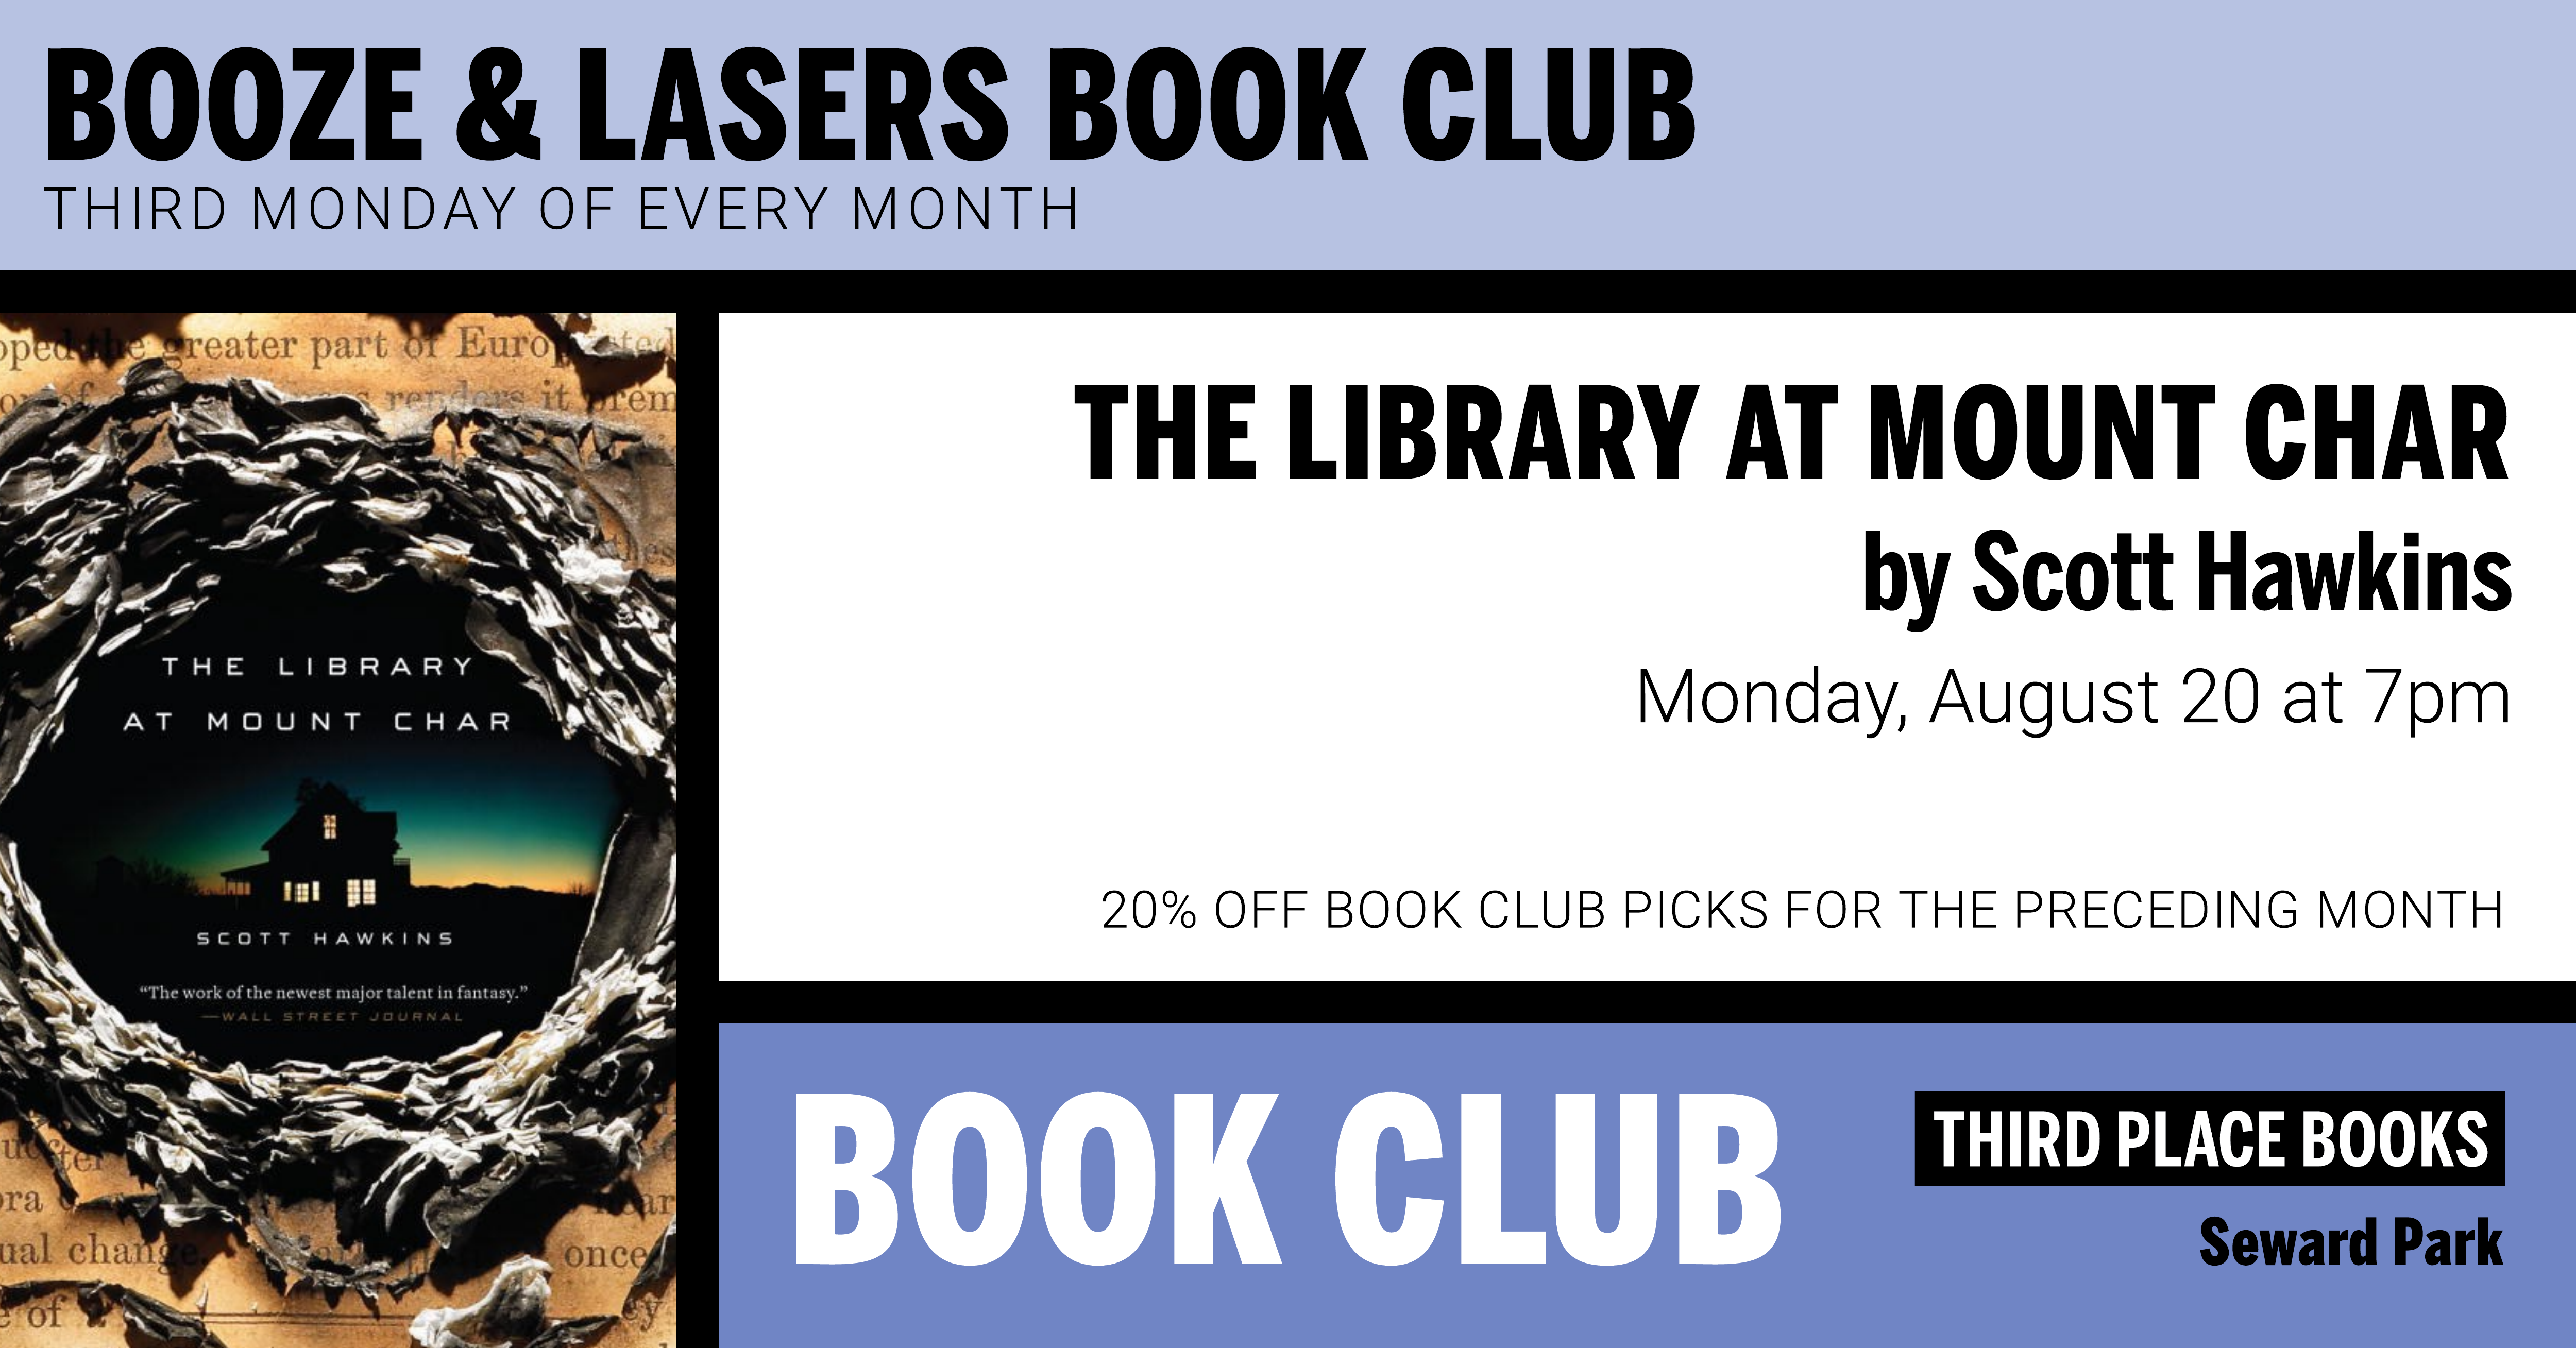 Booze & Lasers Book Club discussing The Library at Mount Char on Monday, August 20 at 7pm